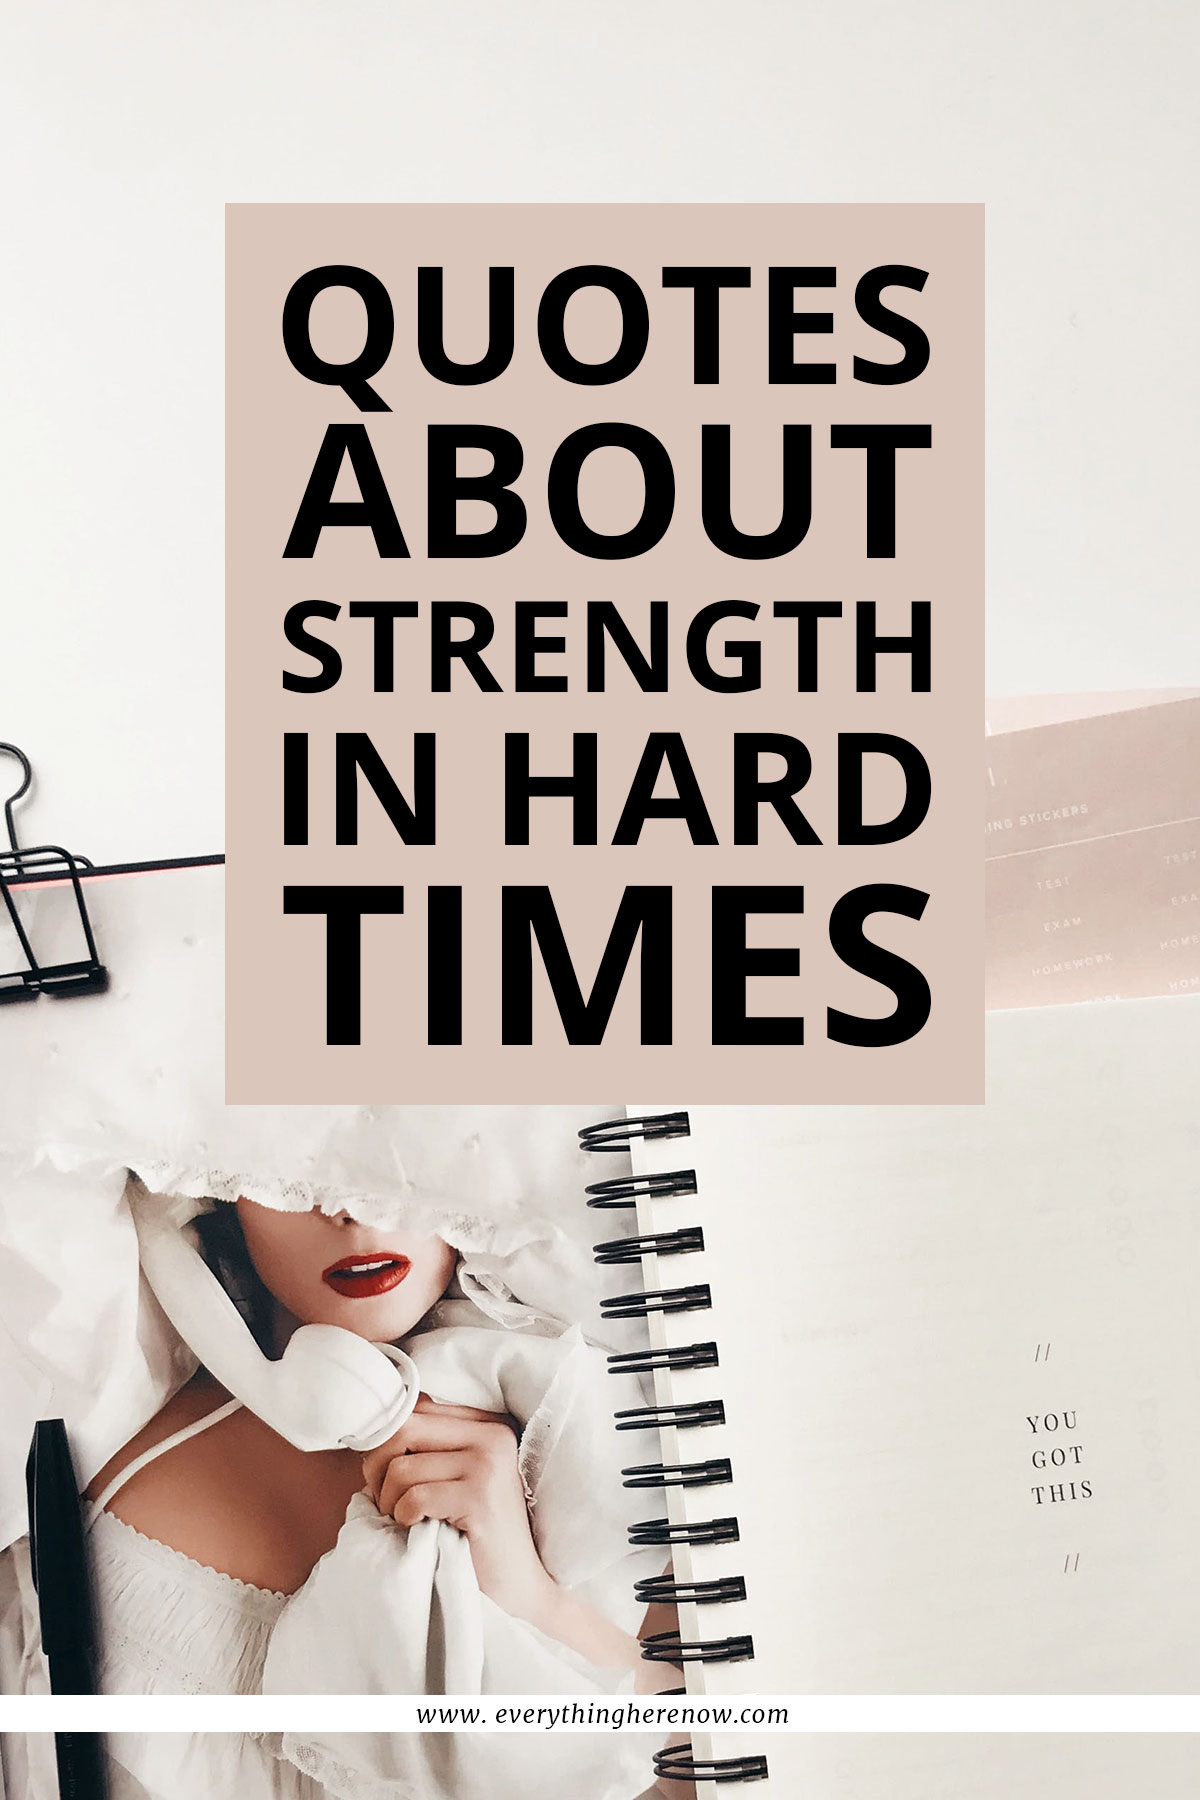 Quotes About Strength In Hard Times: Pick yourself up, gather some inspiration and believe as hard as you can that, in the end, everything will be alright. #quotes #inspiration #bossbabe #inspiringwords www.everythingherenow.com